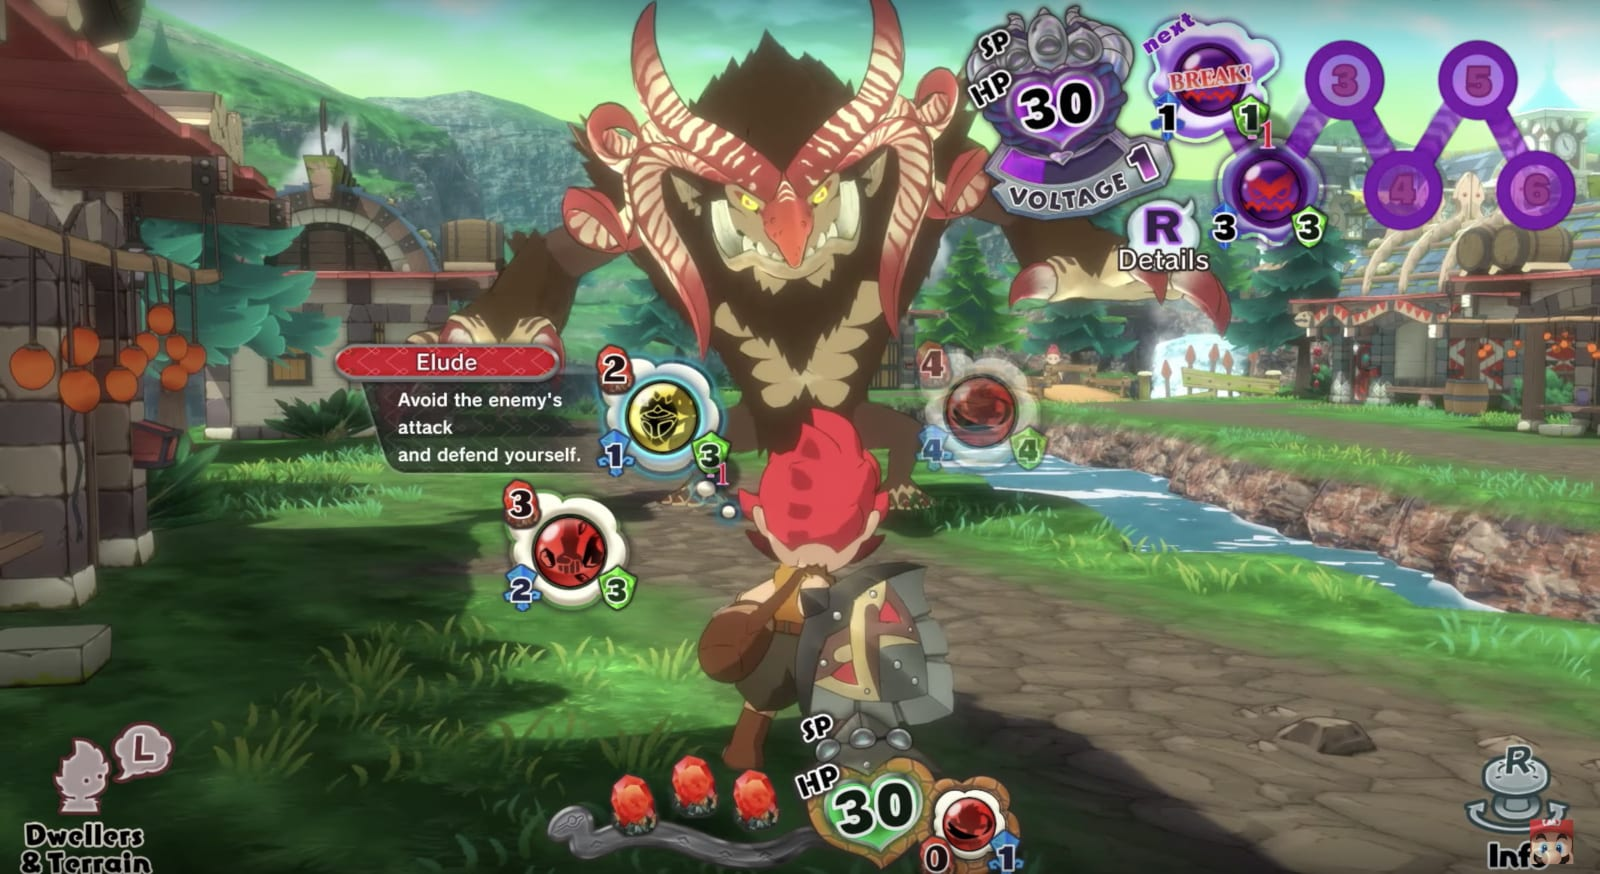 Pokémon' developer is releasing a Switch RPG called 'Town'